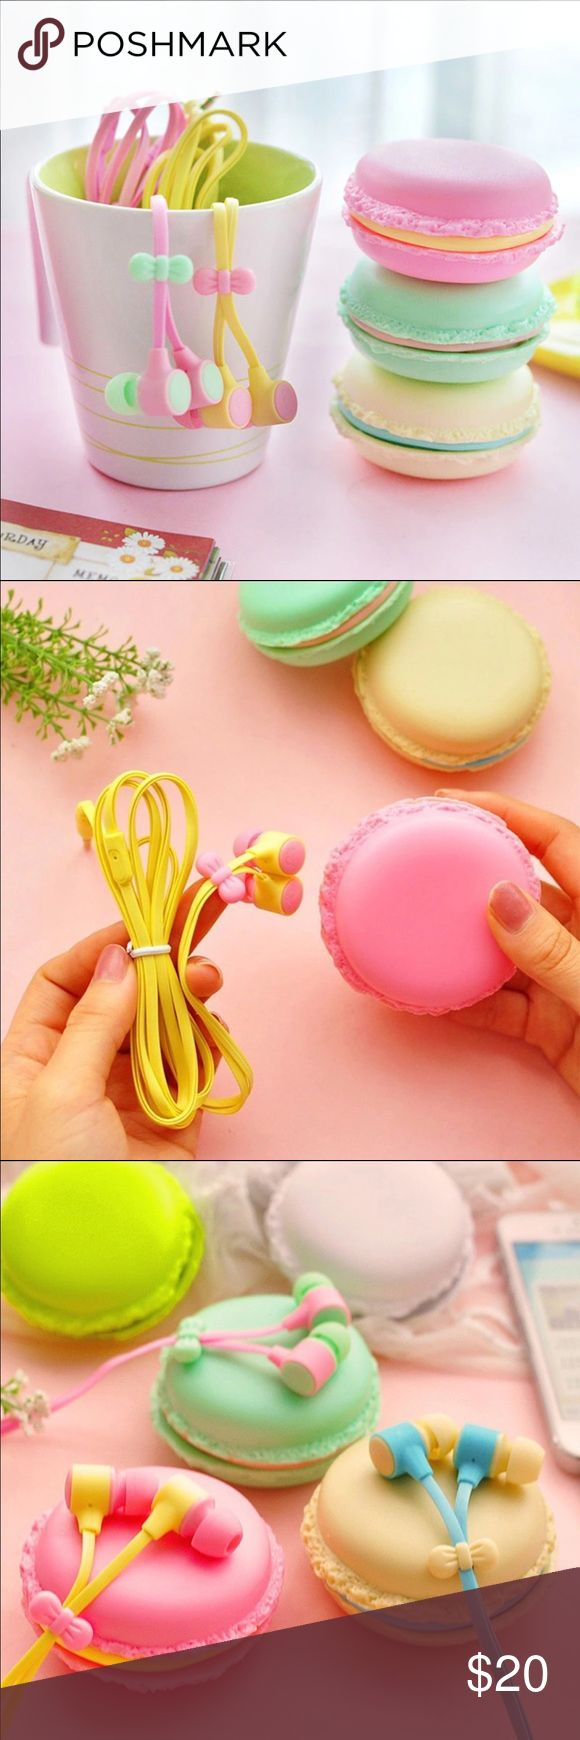 Cute Earbuds & Storage Case Cute enough to eat! High quality, noise canceling earbuds come with an adorable carrying case! #notuo Available in: •Pink & Yellow •Green & Pink •Blue & Cream Urban Outfitters Other